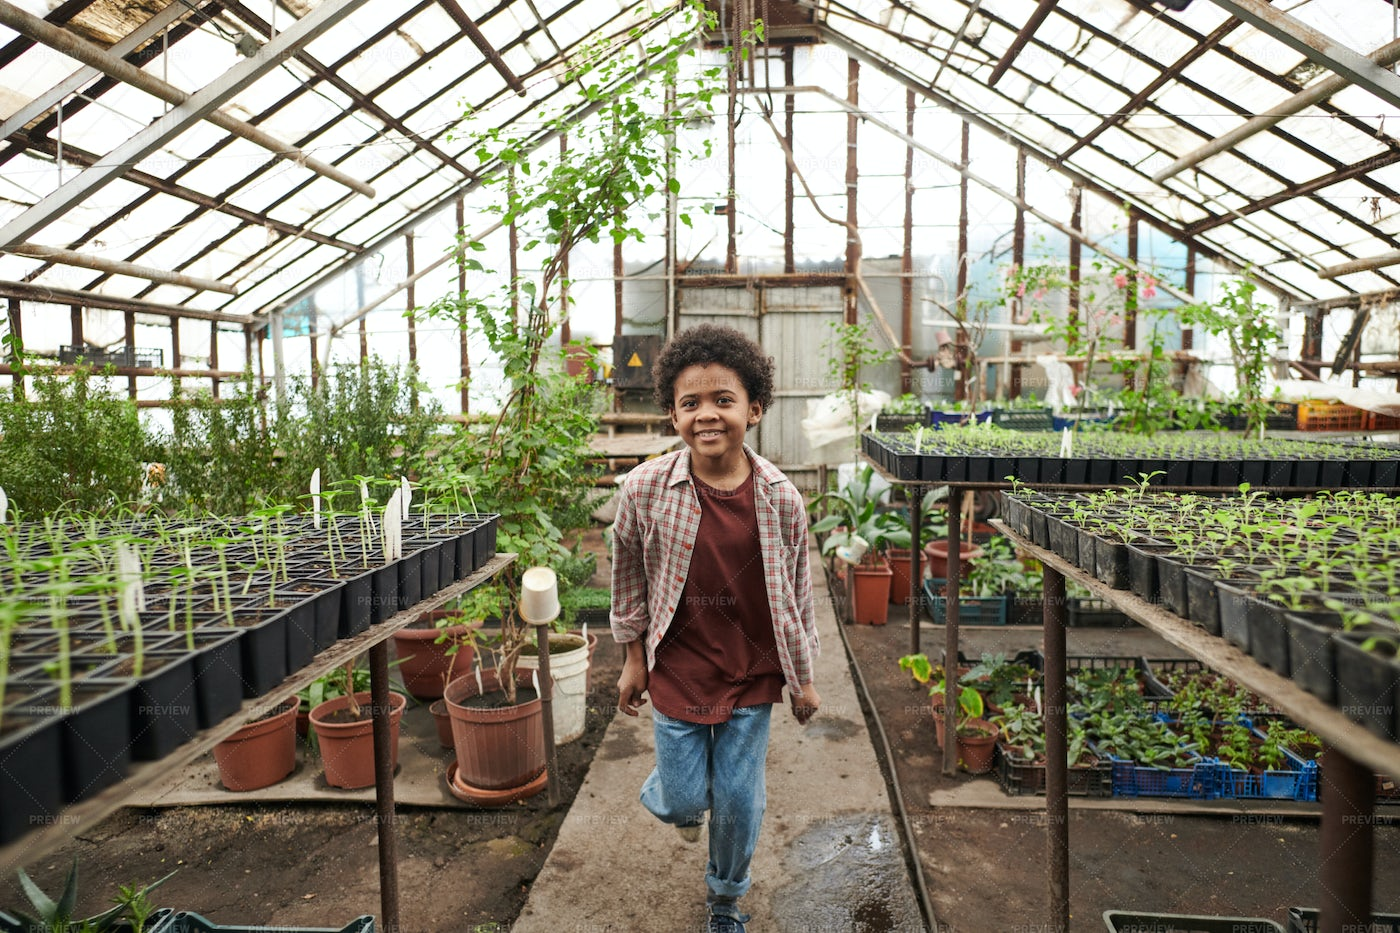 Kid Running In A Greenhouse: Stock Photos